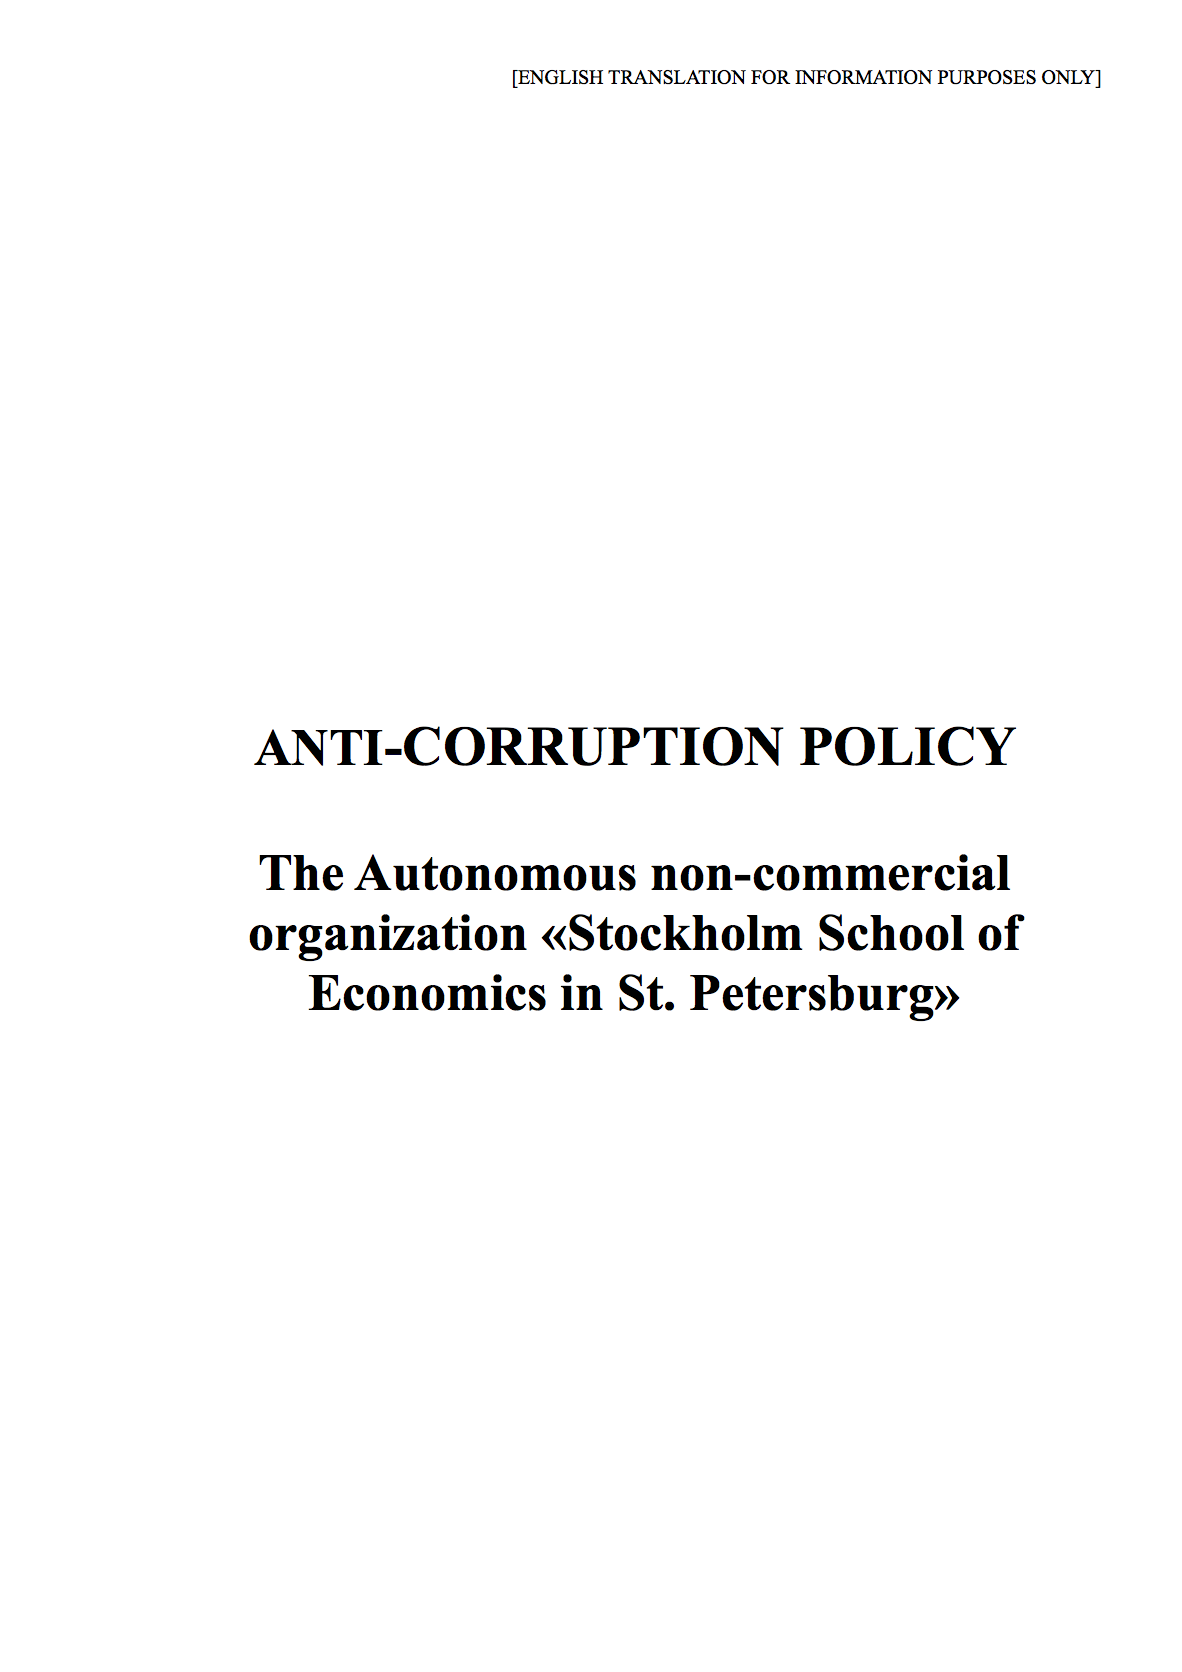 ANTI-CORRUPTION POLICY, The Autonomous non-commercial organization «Stockholm School of Economics in St. Petersburg»